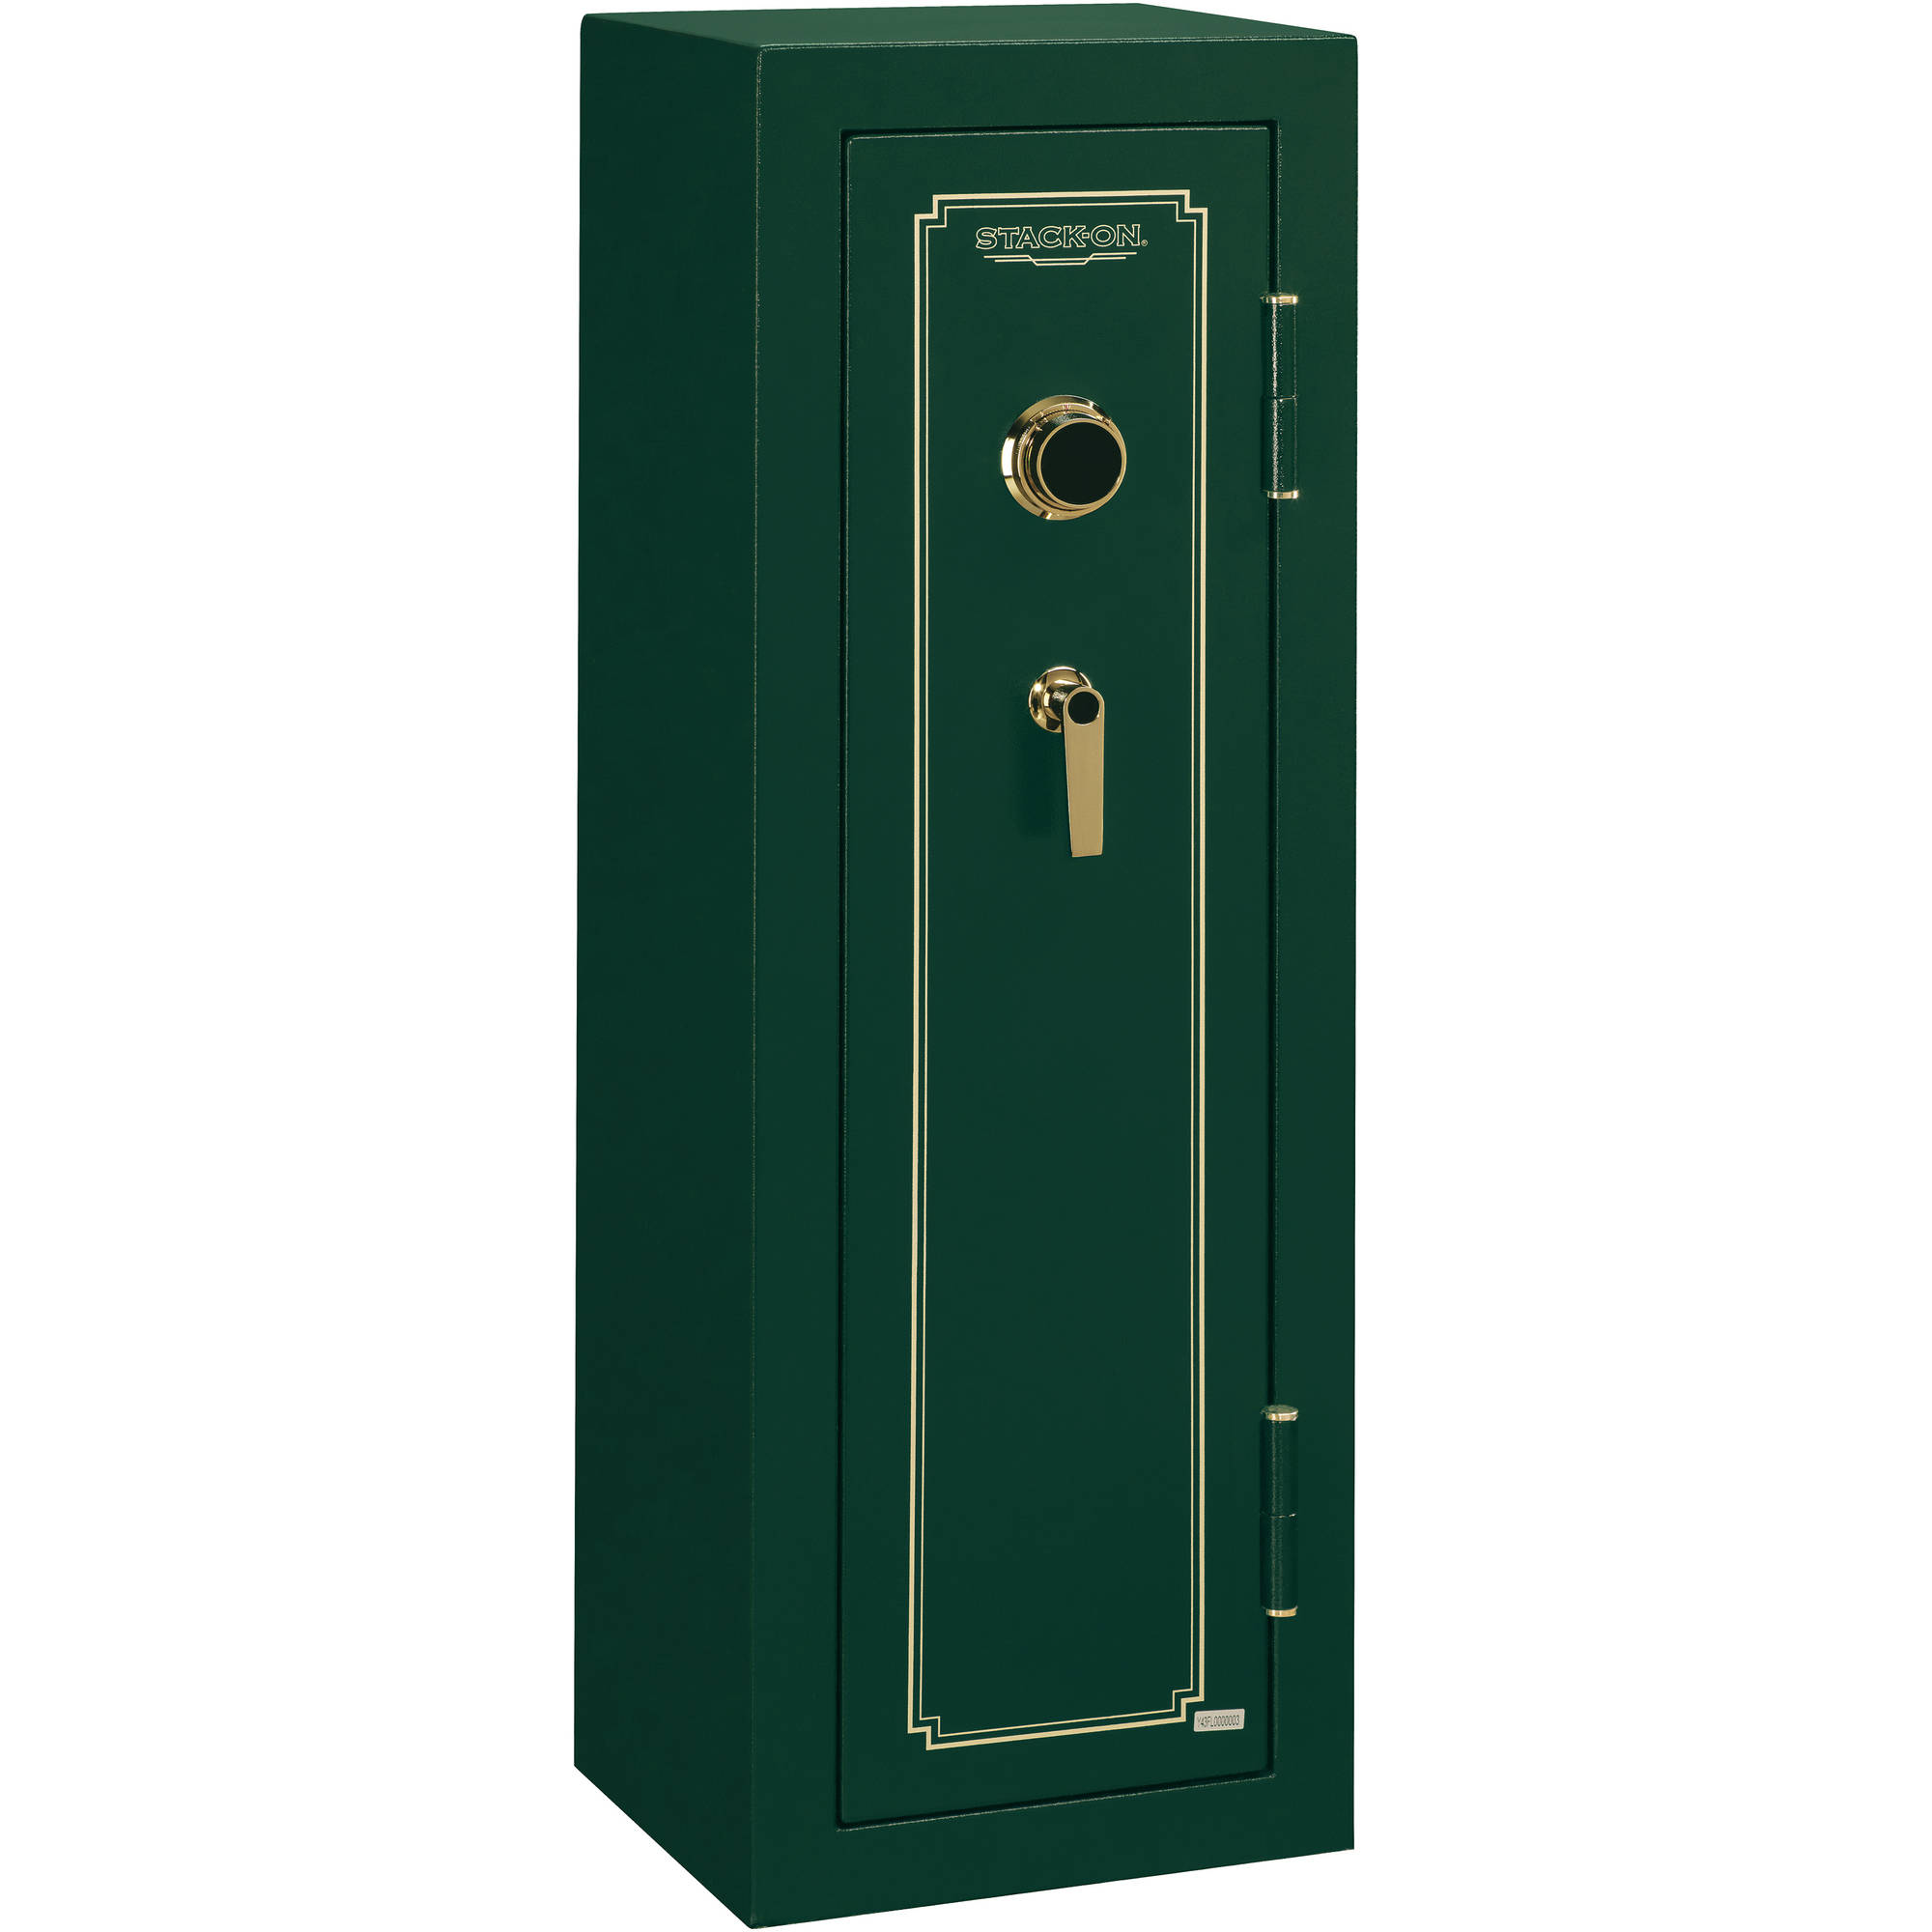 Stack-On 8 Gun Fire Resistant Security Safe with Combination Lock FS-8-MG-C Hunter Green